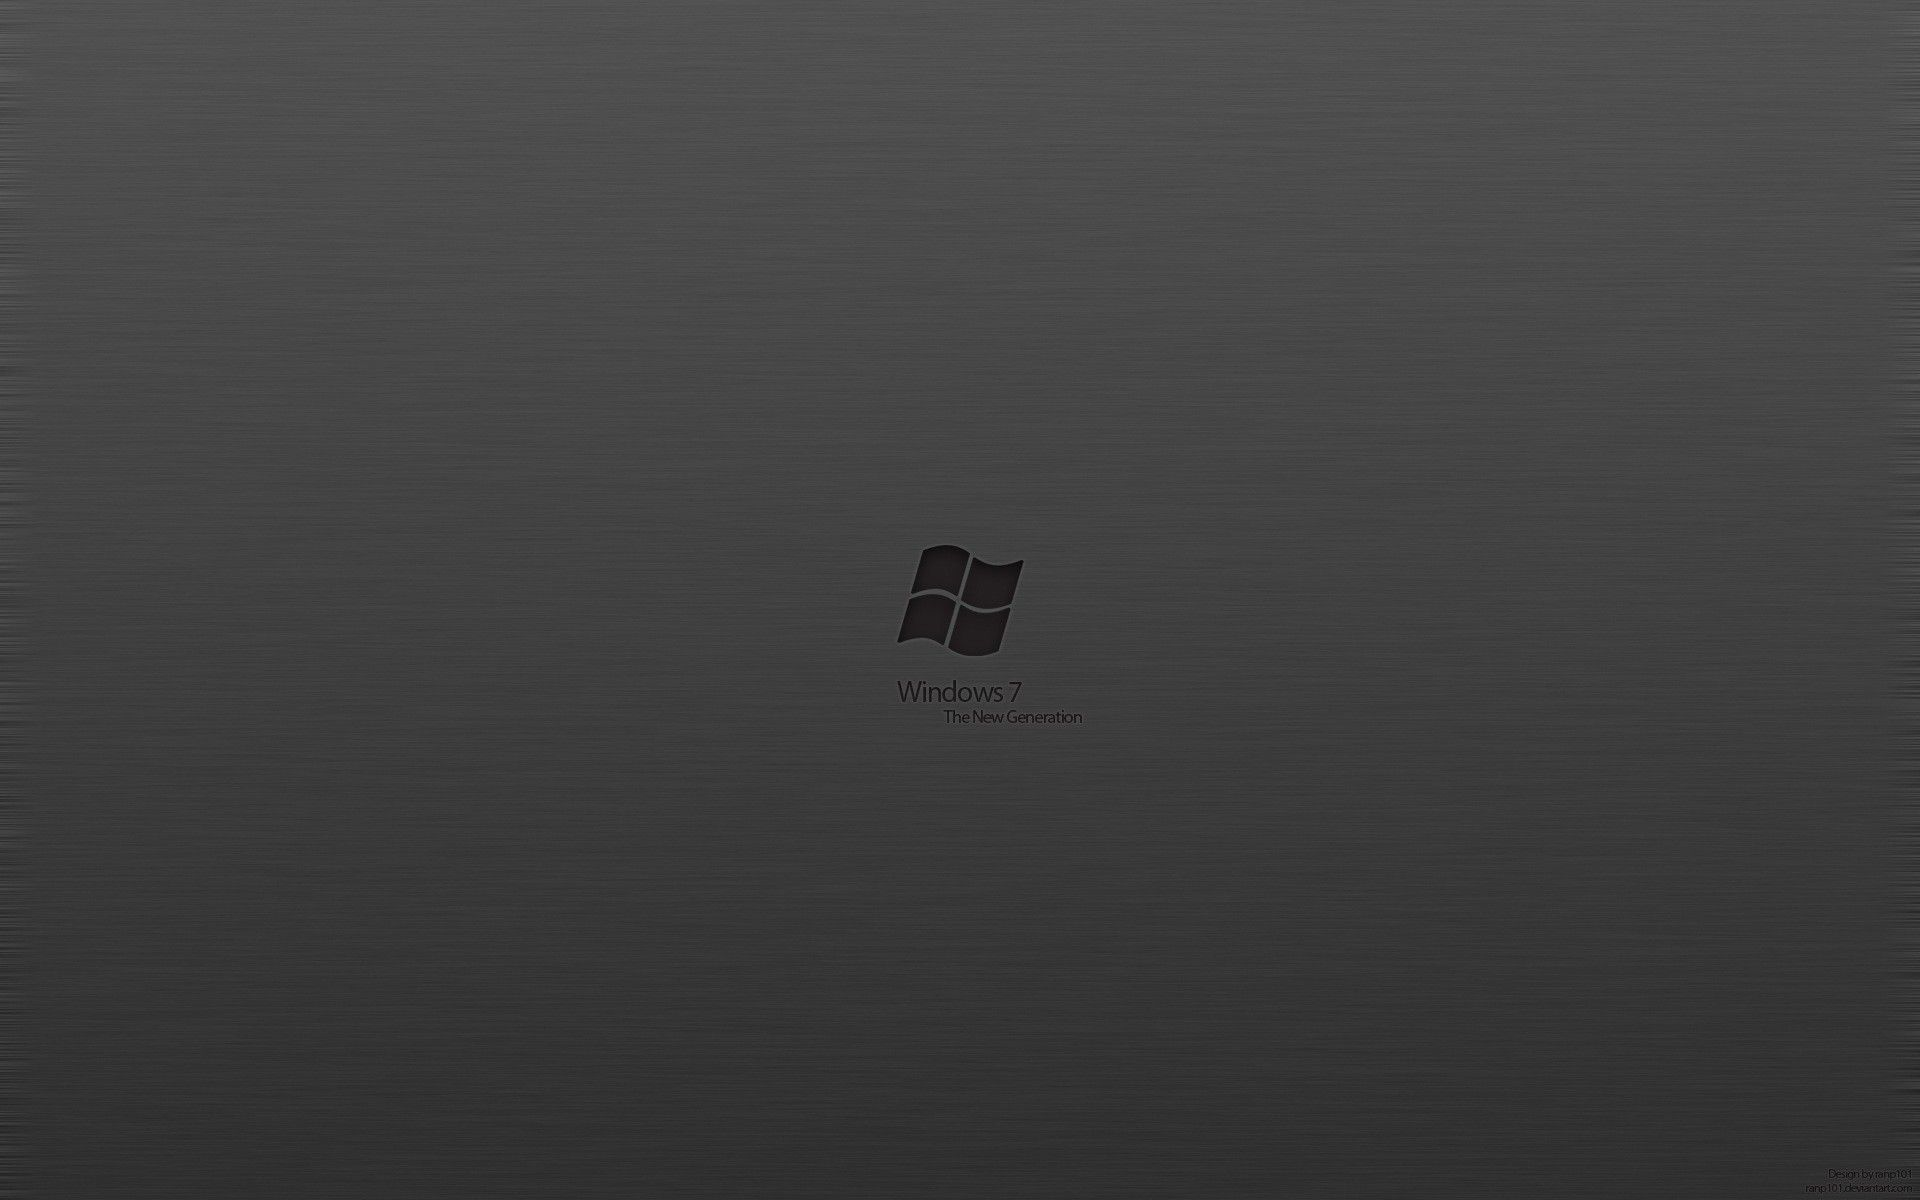 Pin By Mohammad Yeganeh On Windows Windows Wallpaper Black Wallpaper Black And White Wallpaper